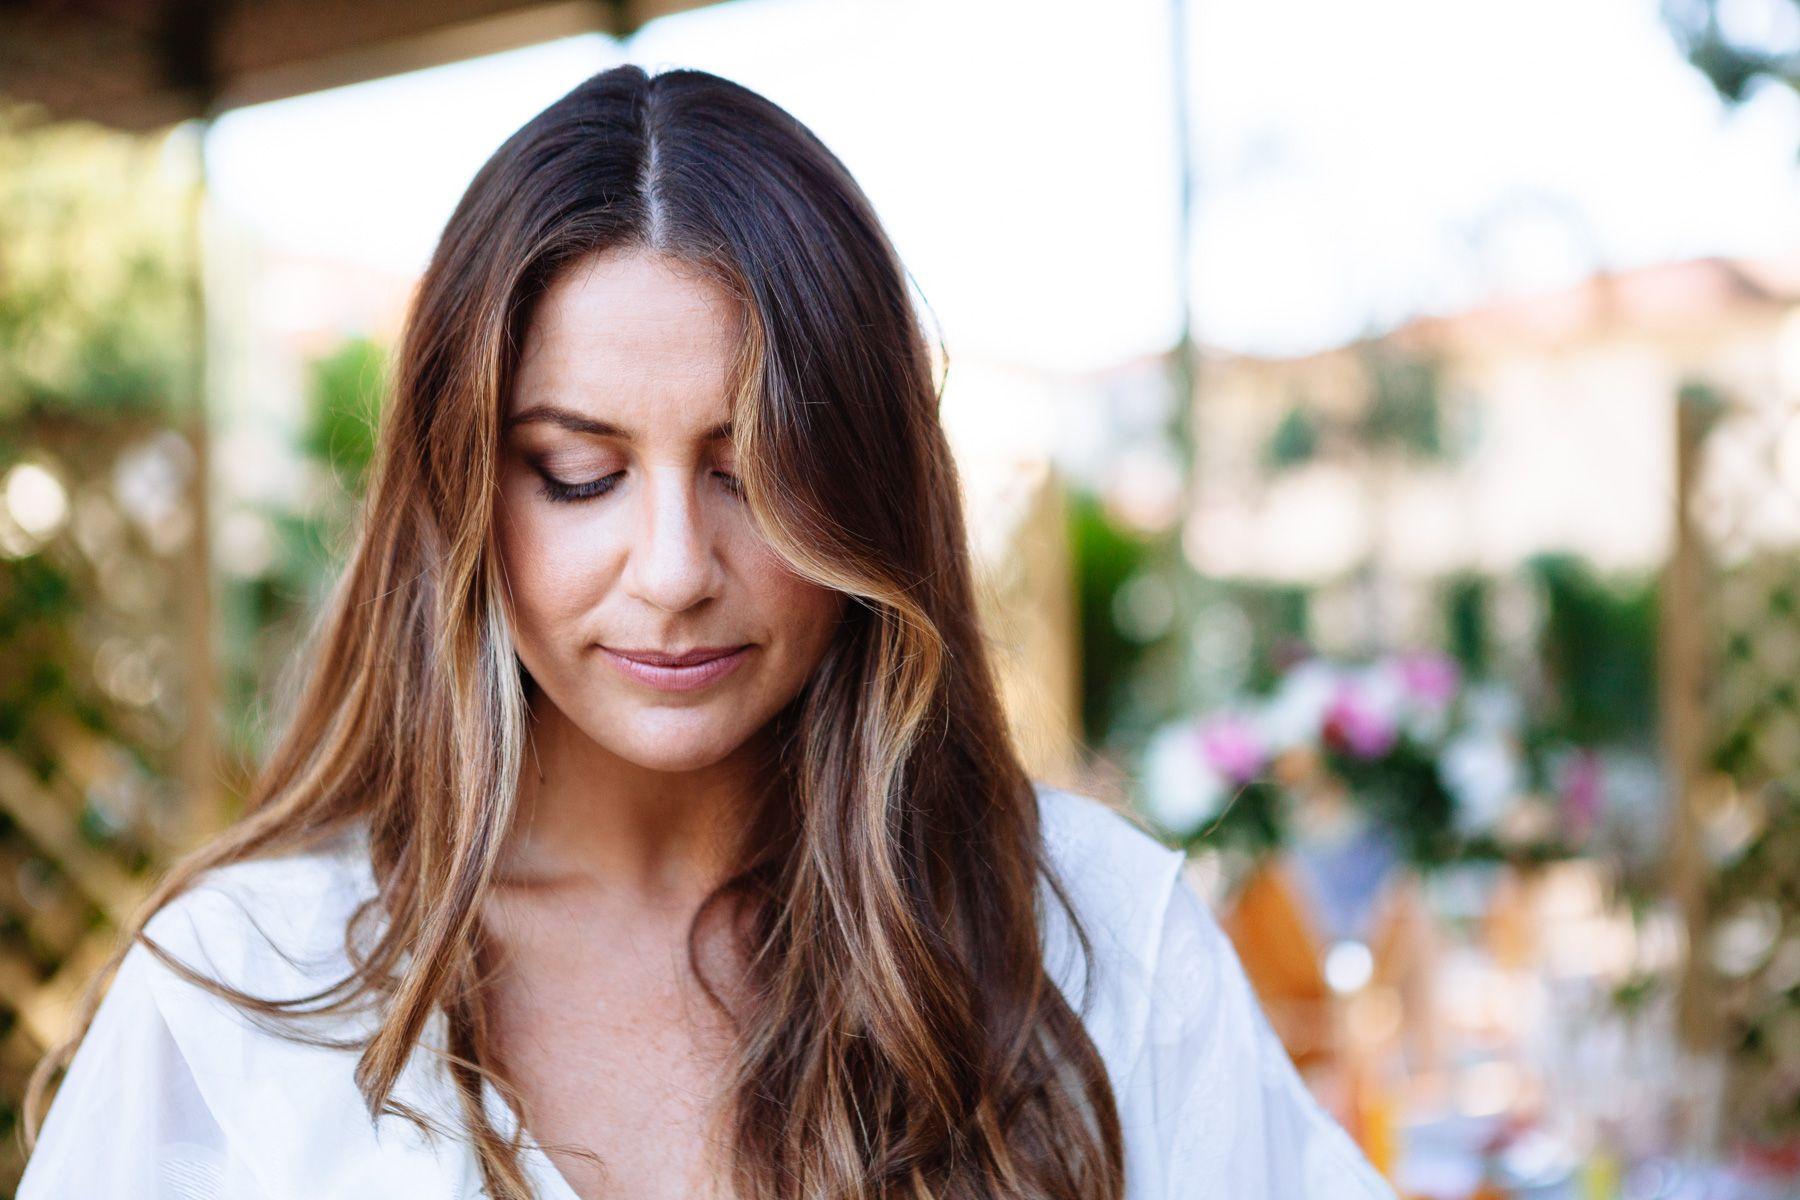 natural and relaxed wedding hair and makeup inspiration for an intimate wedding in Tuscany